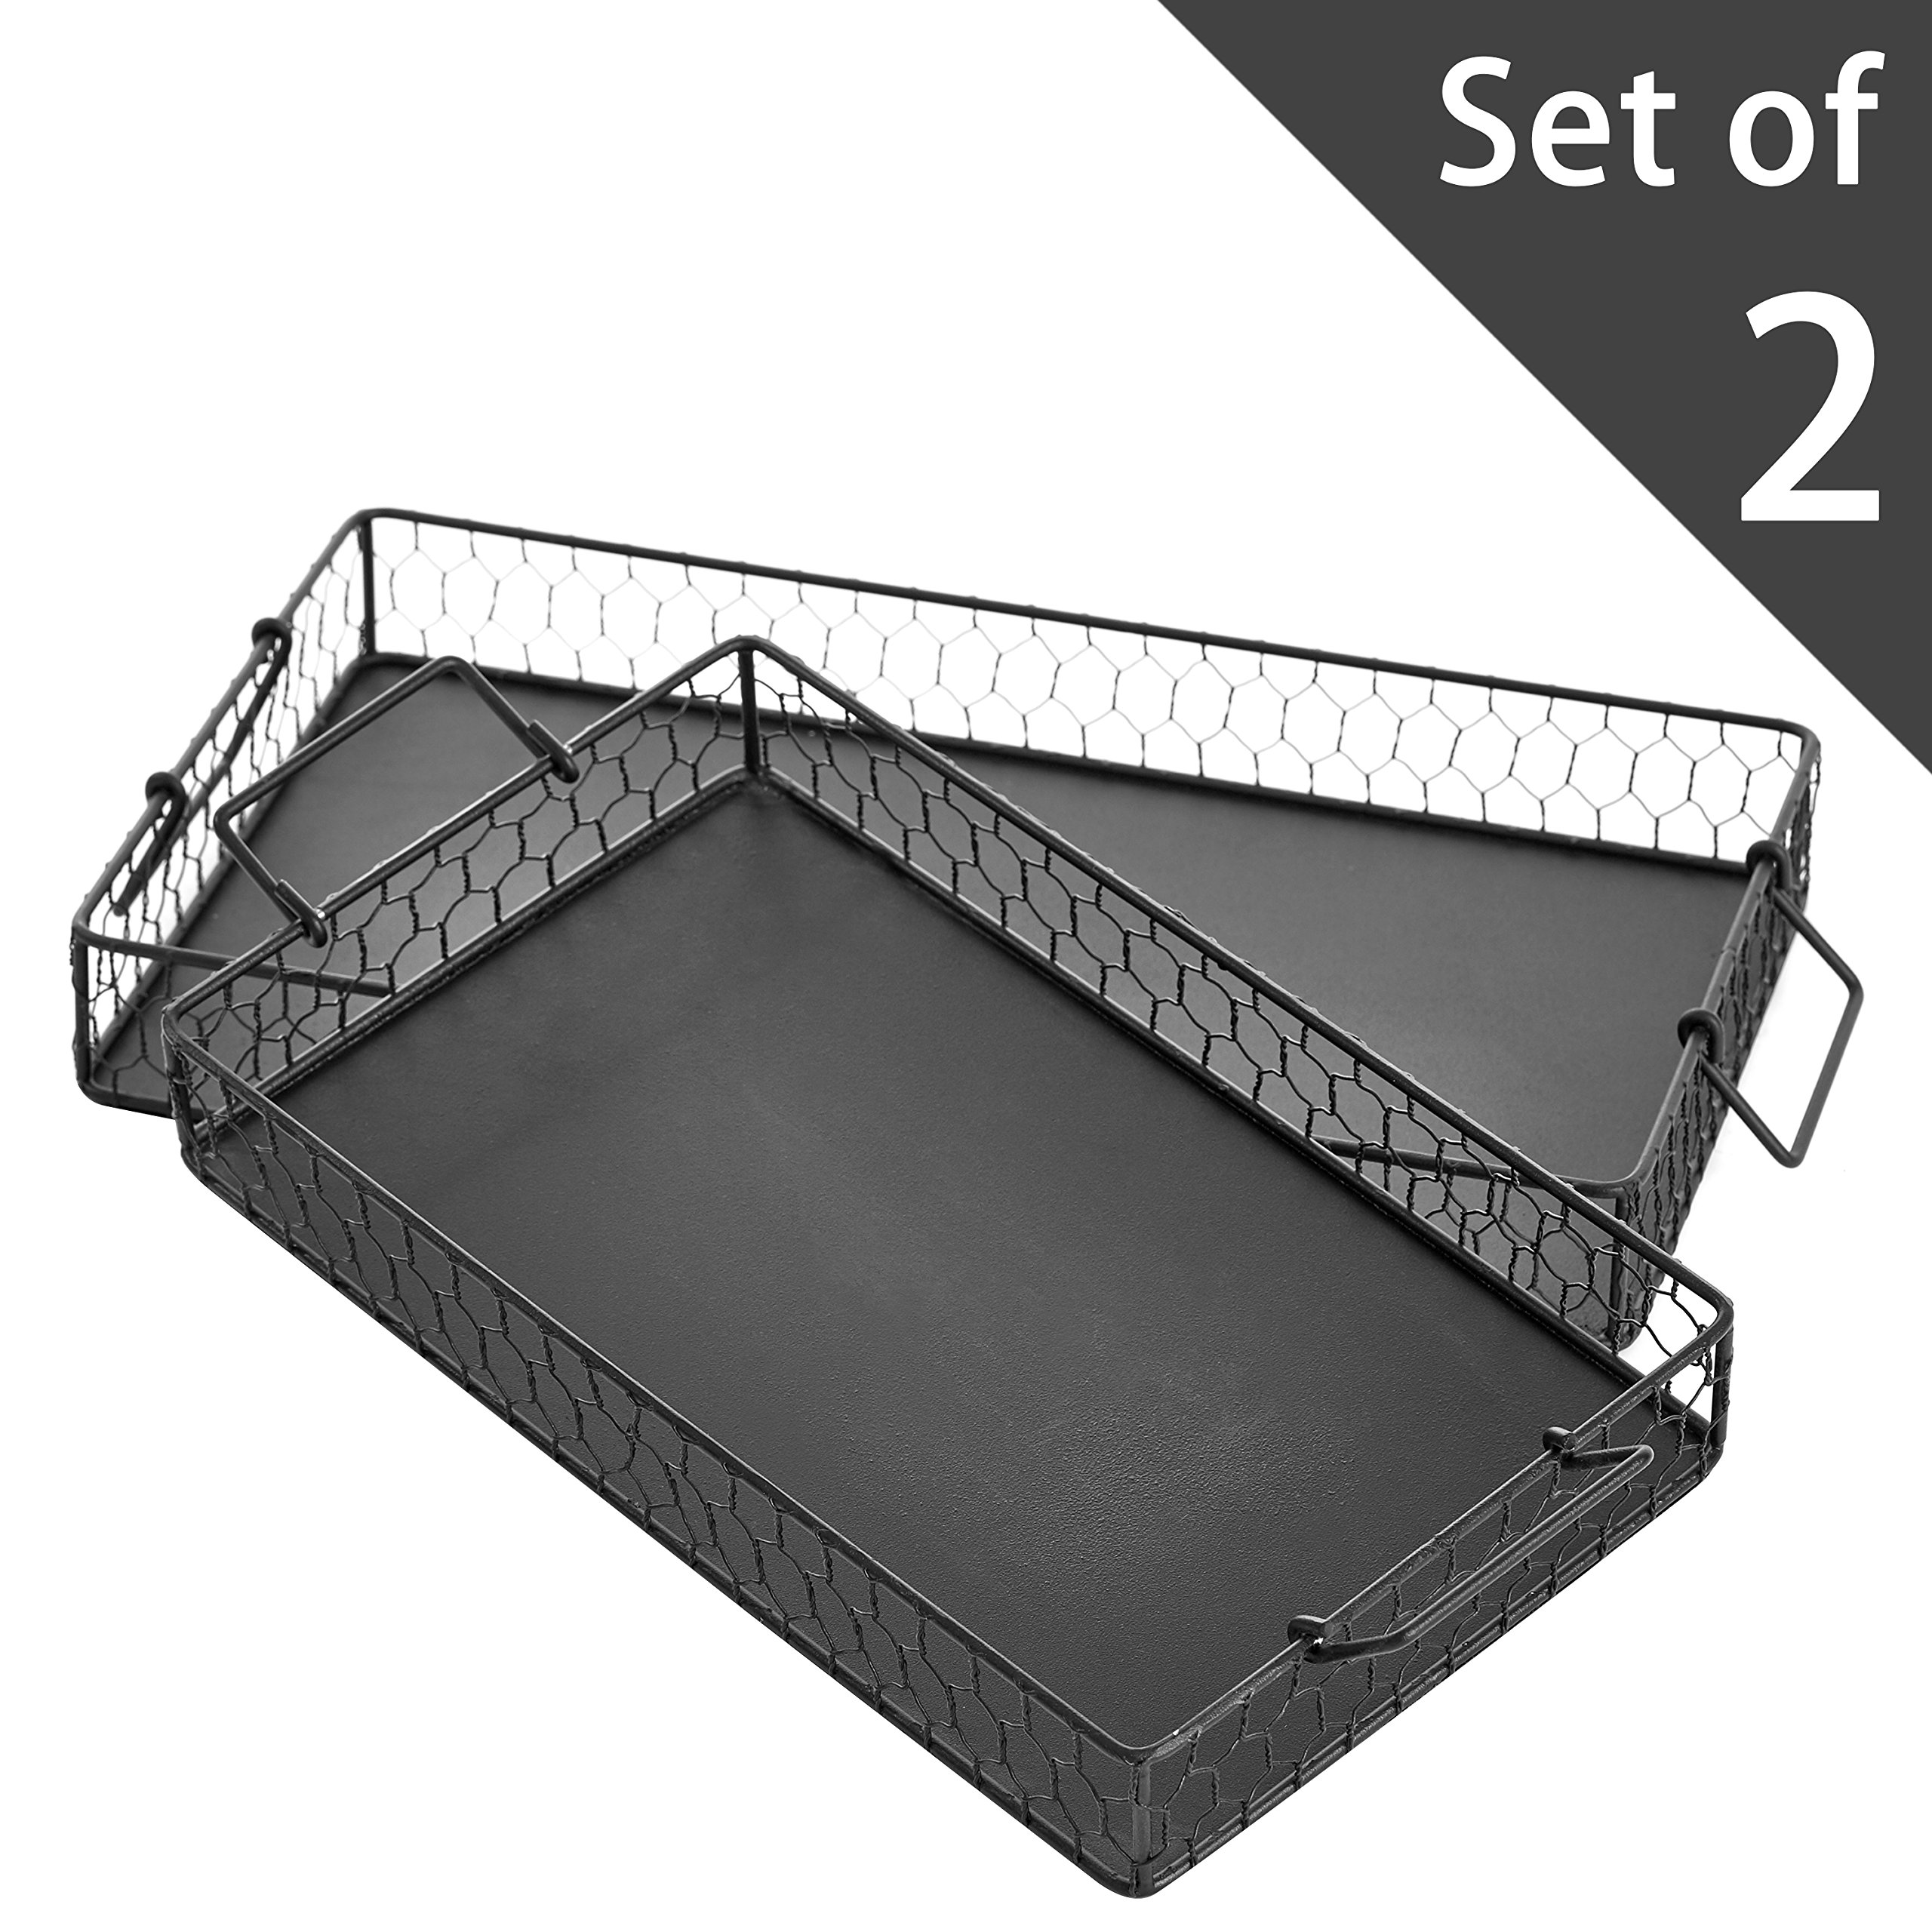 MyGift Set of 2 Chicken Wire Country Design Black Metal Mesh Rectangular Decorative Trays with Handles by MyGift